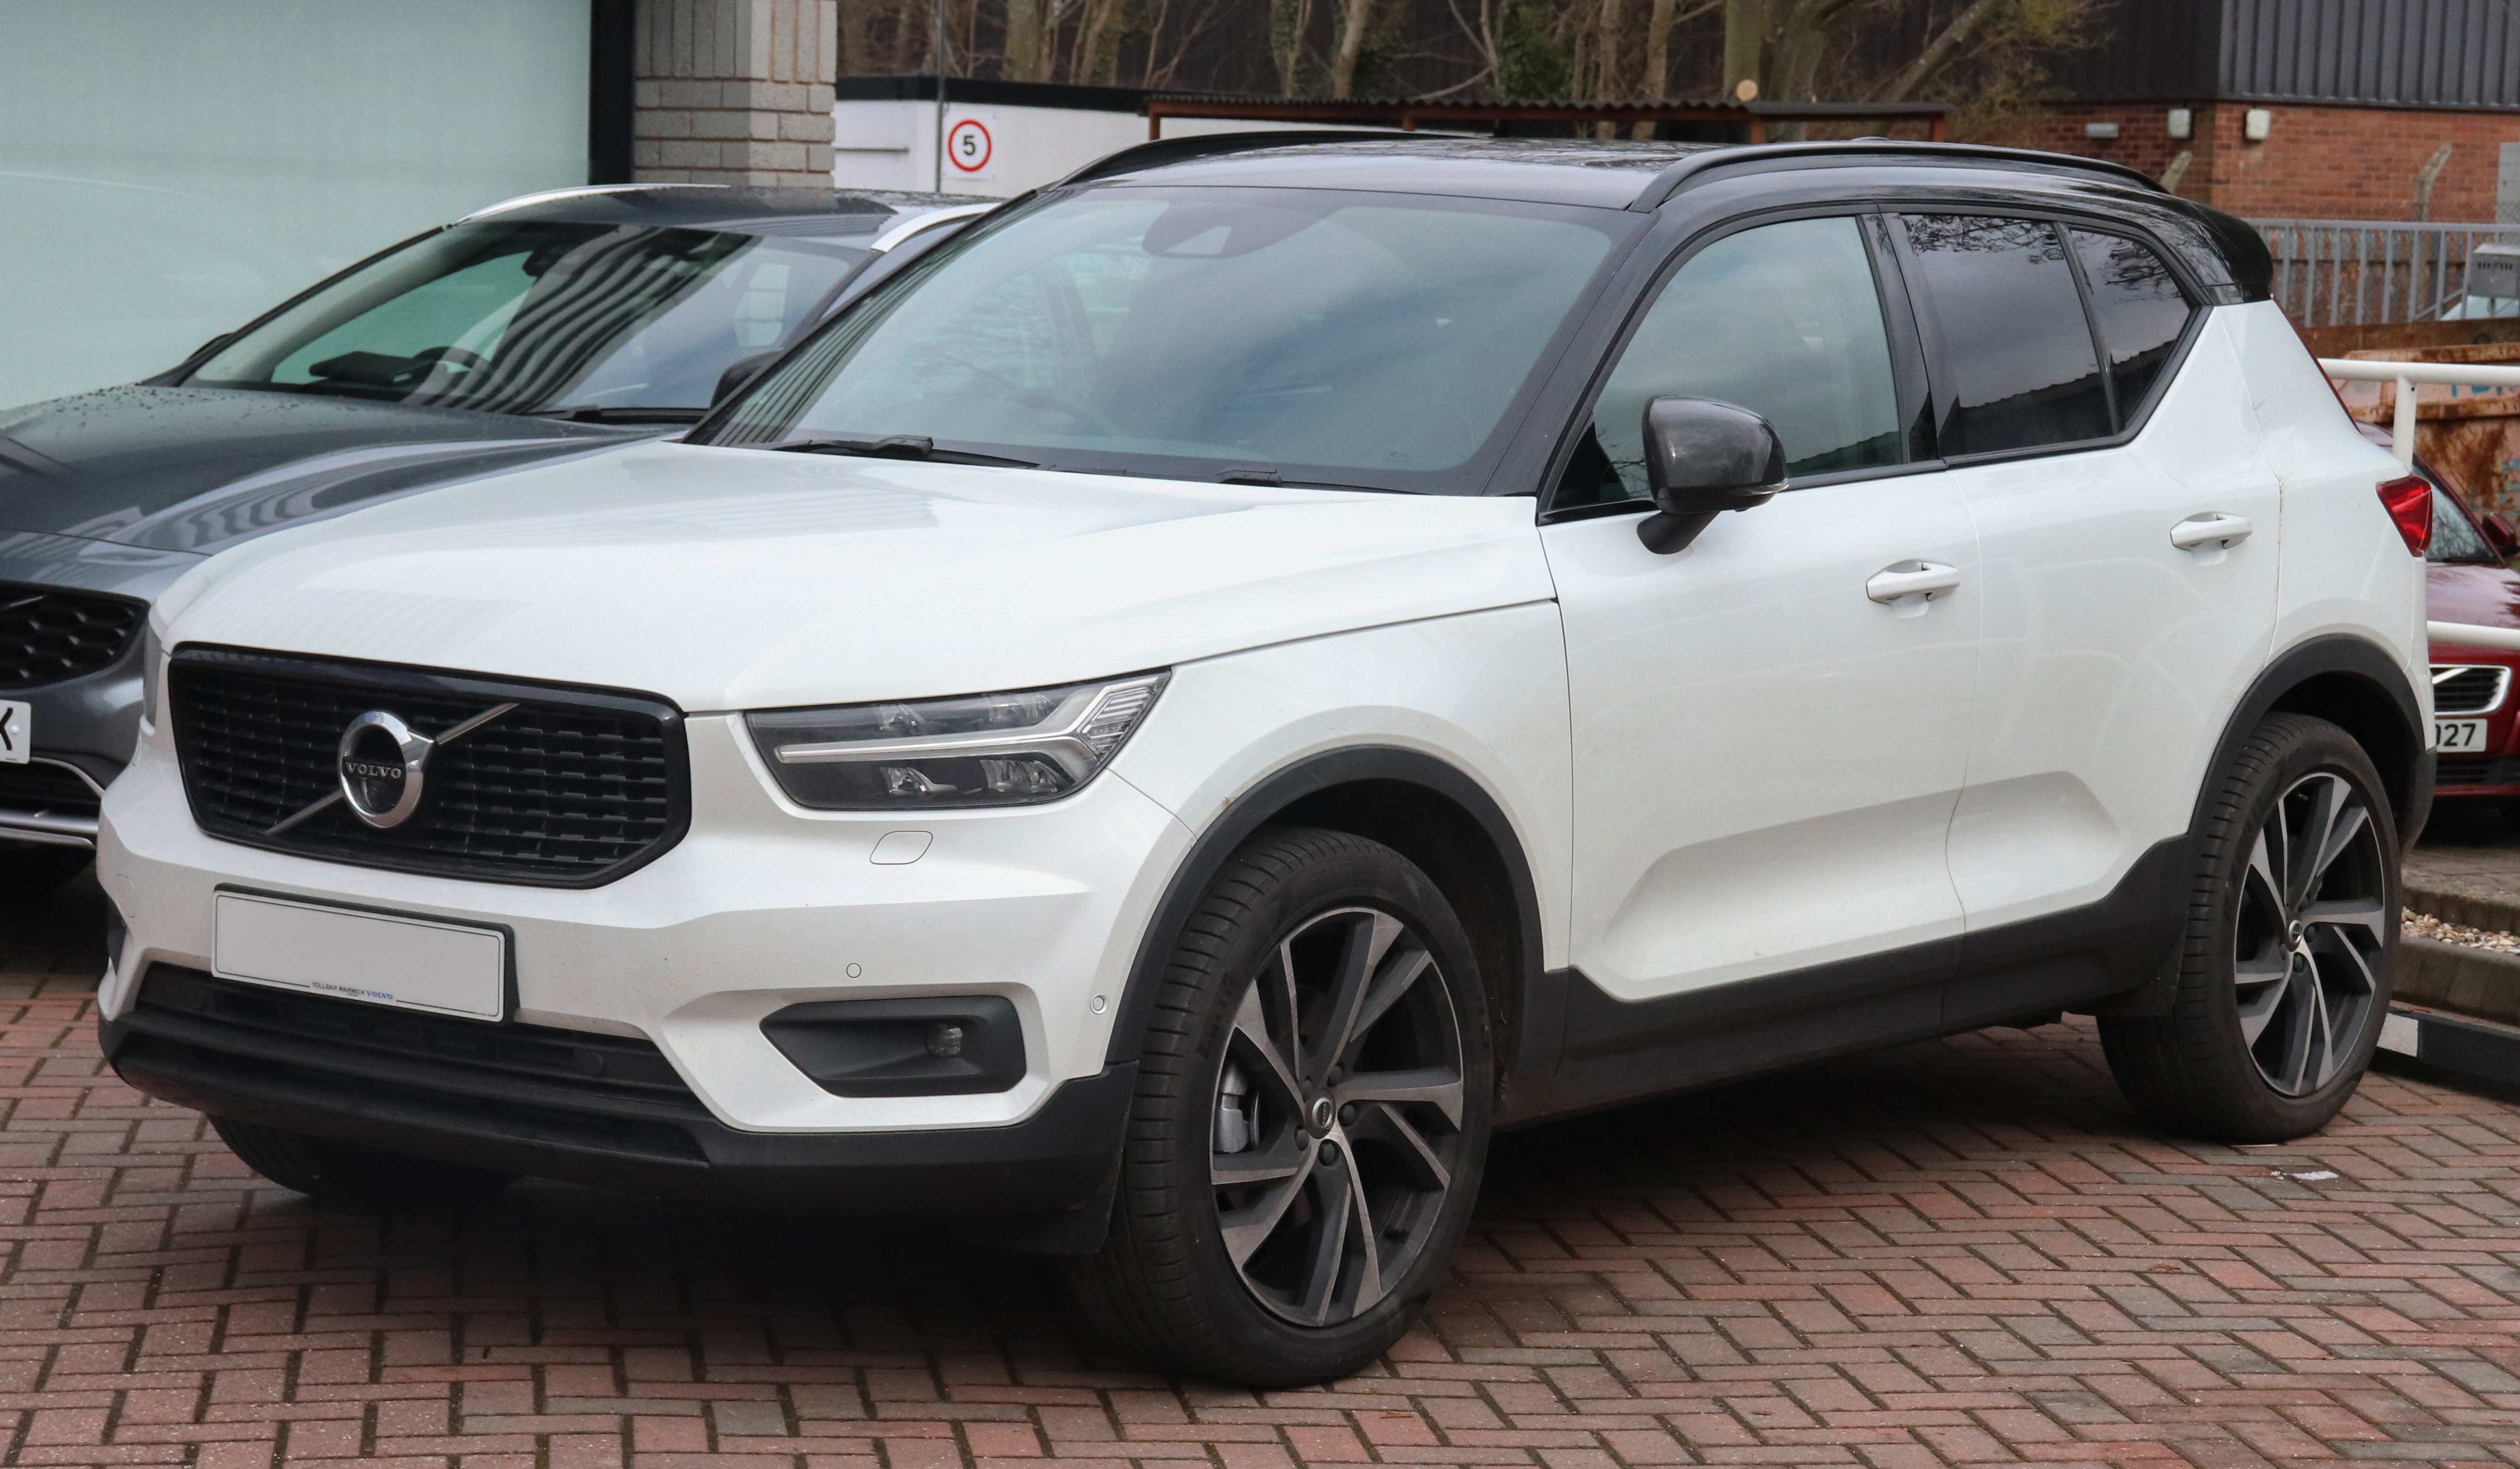 53 Concept of Volvo Xc40 2020 Update Pictures with Volvo Xc40 2020 Update